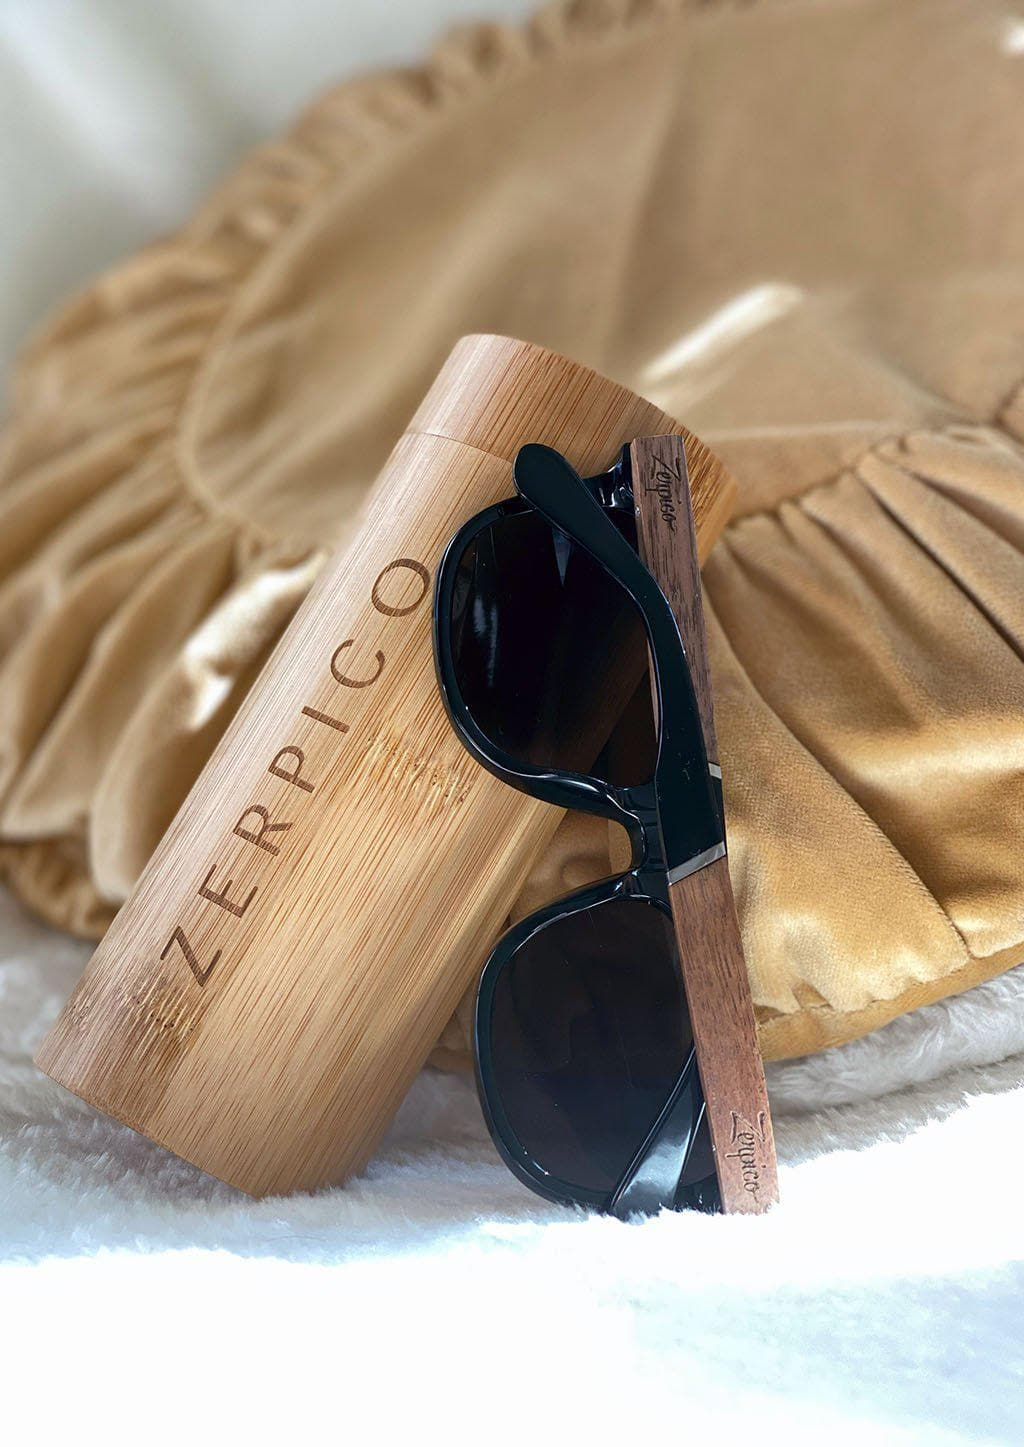 Eyewood Wayfarers - Fusion - Viper - A mix of acetate and wood makes theses sunglasses unique. Showing of details and colors.